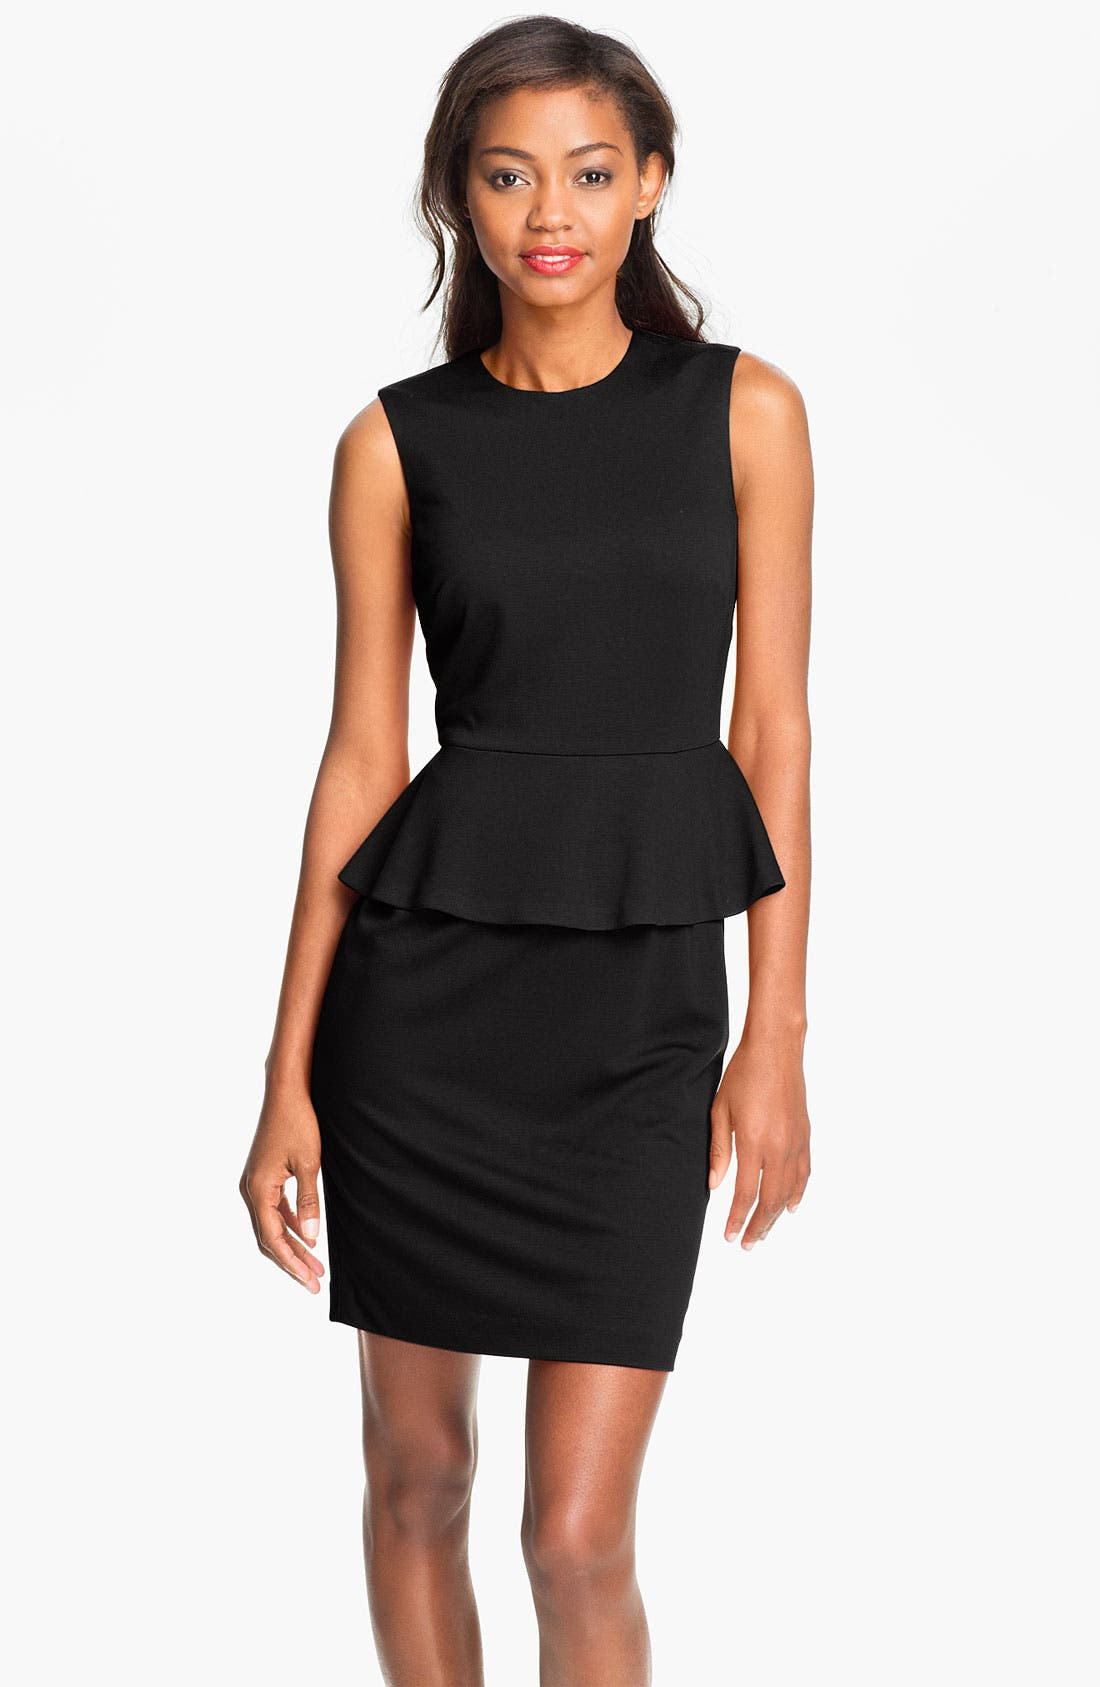 Alternate Image 1 Selected - Vince Camuto Peplum Sheath Dress (Petite)